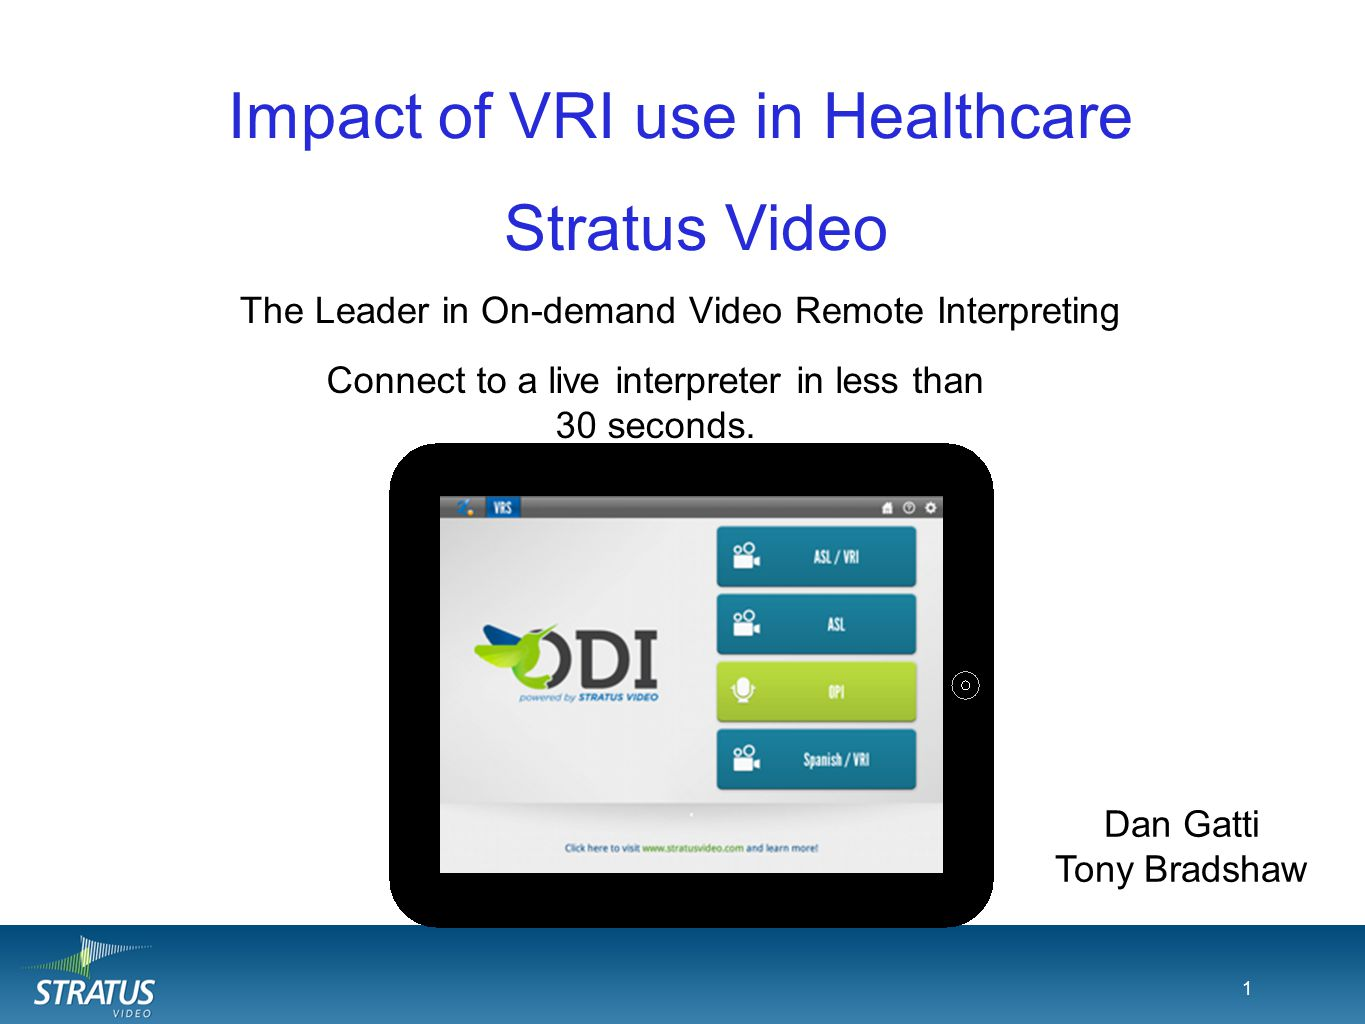 1 Impact of VRI use in Healthcare The Leader in On-demand Video Remote Interpreting 1 Connect to a live interpreter in less than 30 seconds. Stratus V